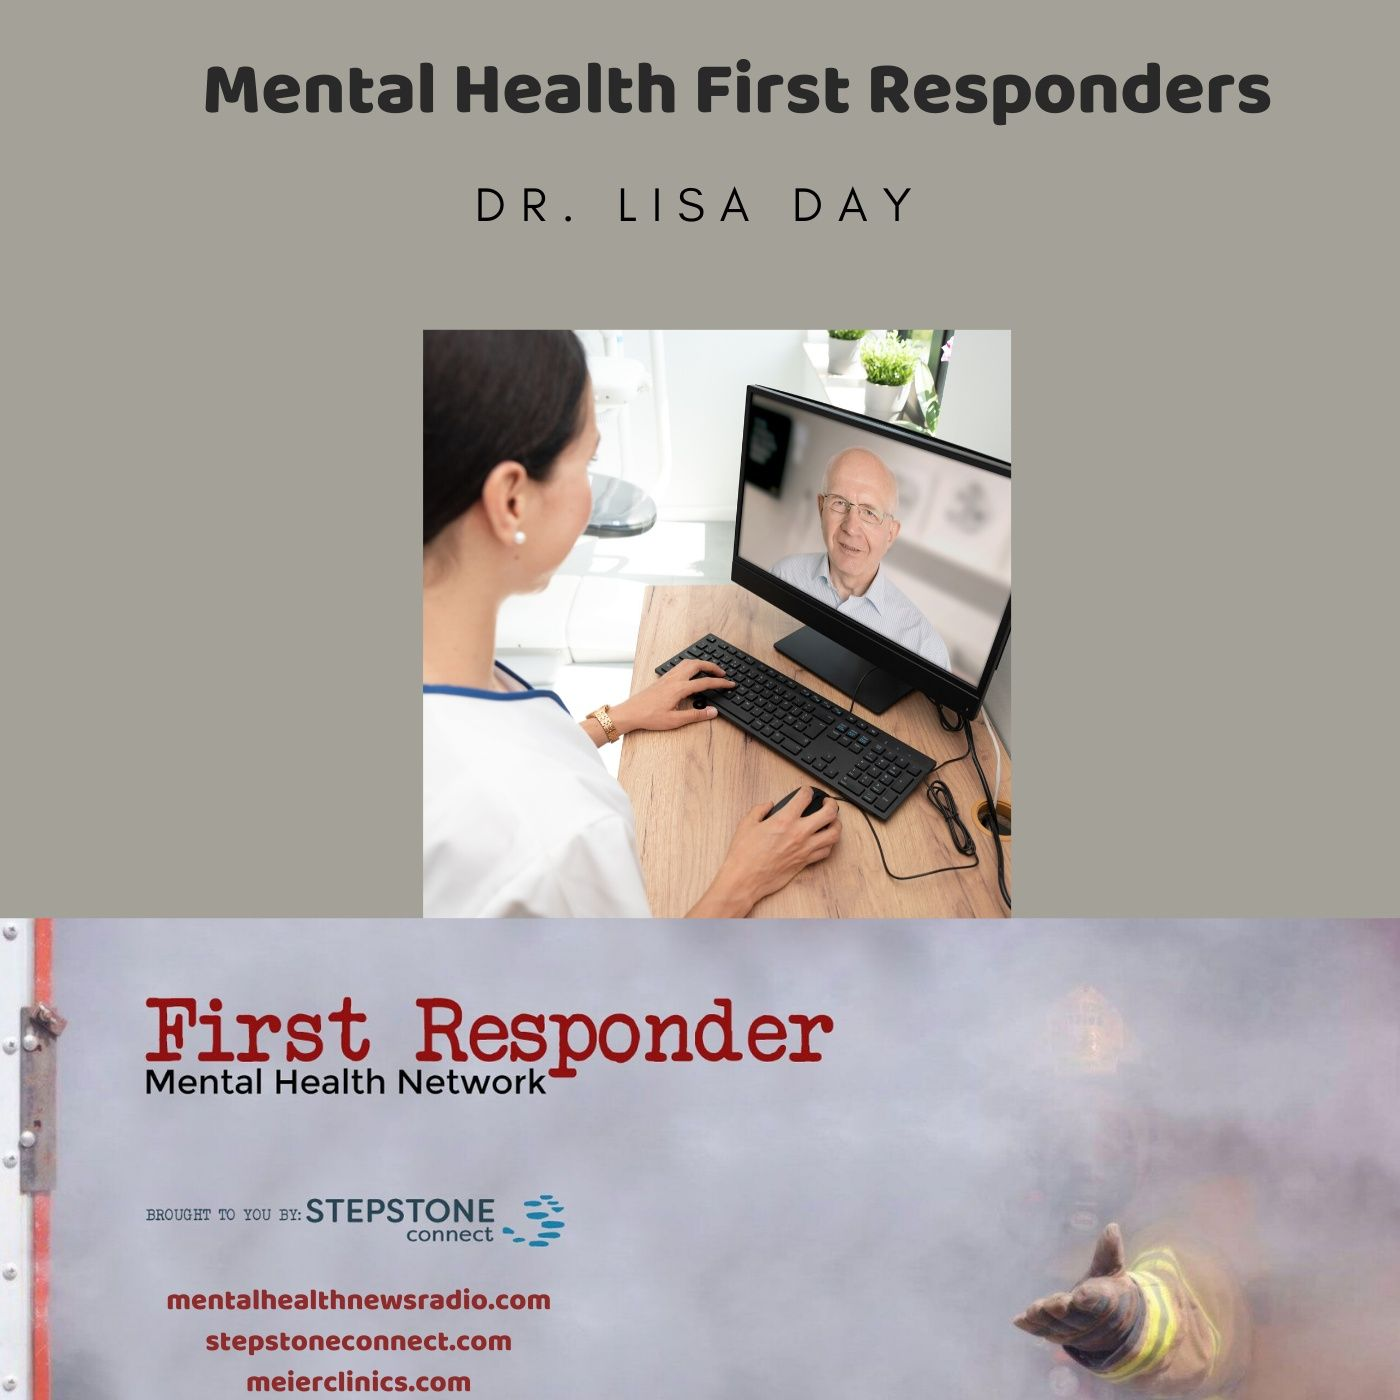 Mental Health News Radio - Mental Health First Responders with Dr. Lisa Day